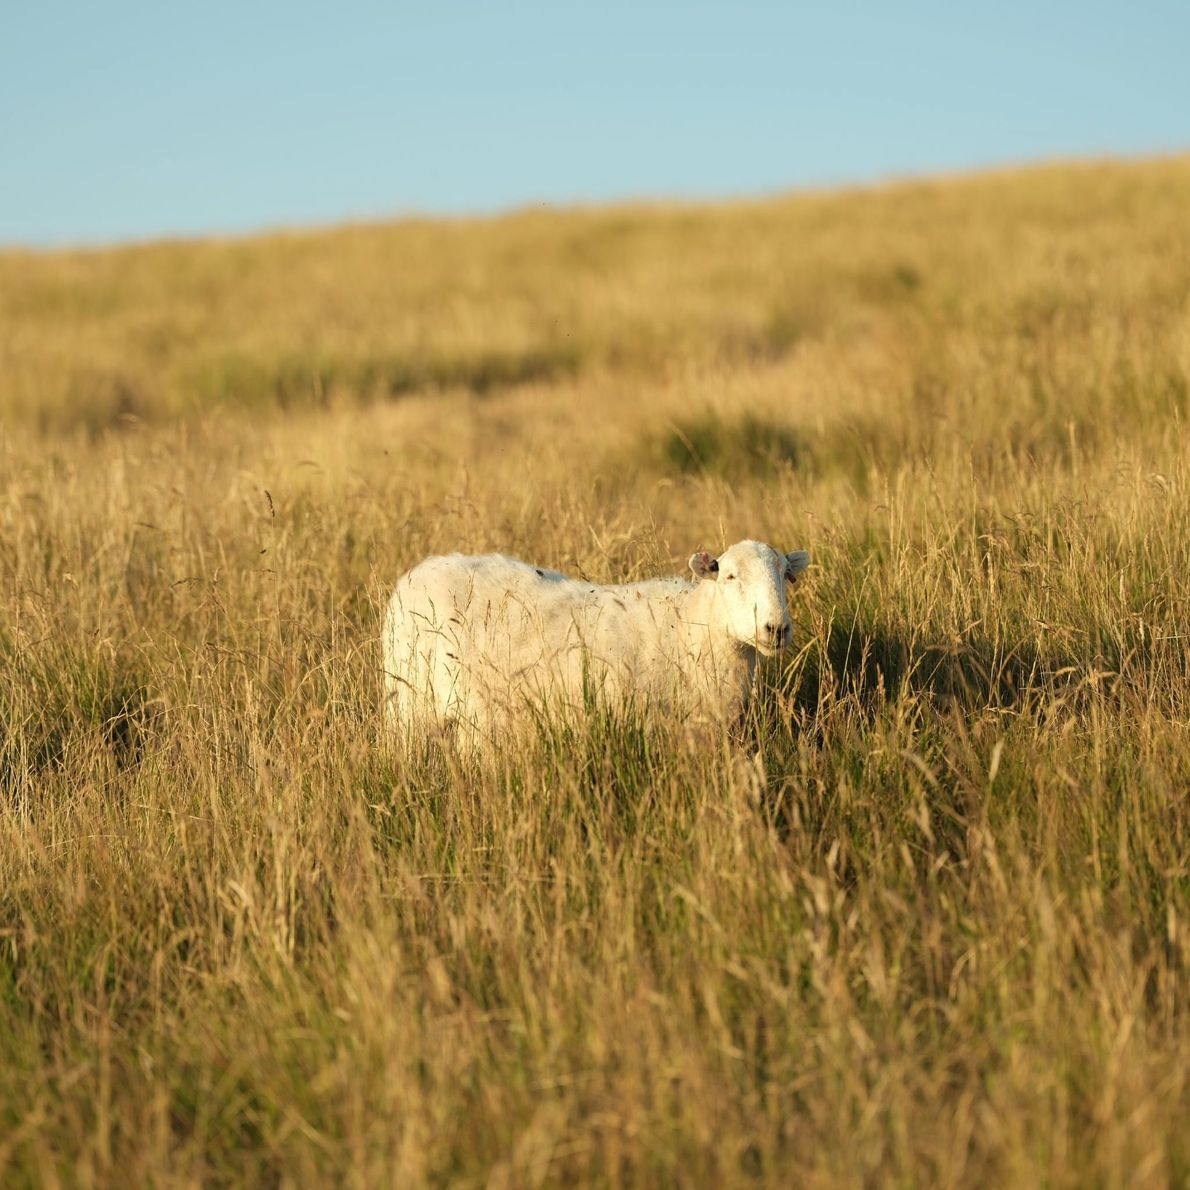 A sheep grazes in southern England wine country.